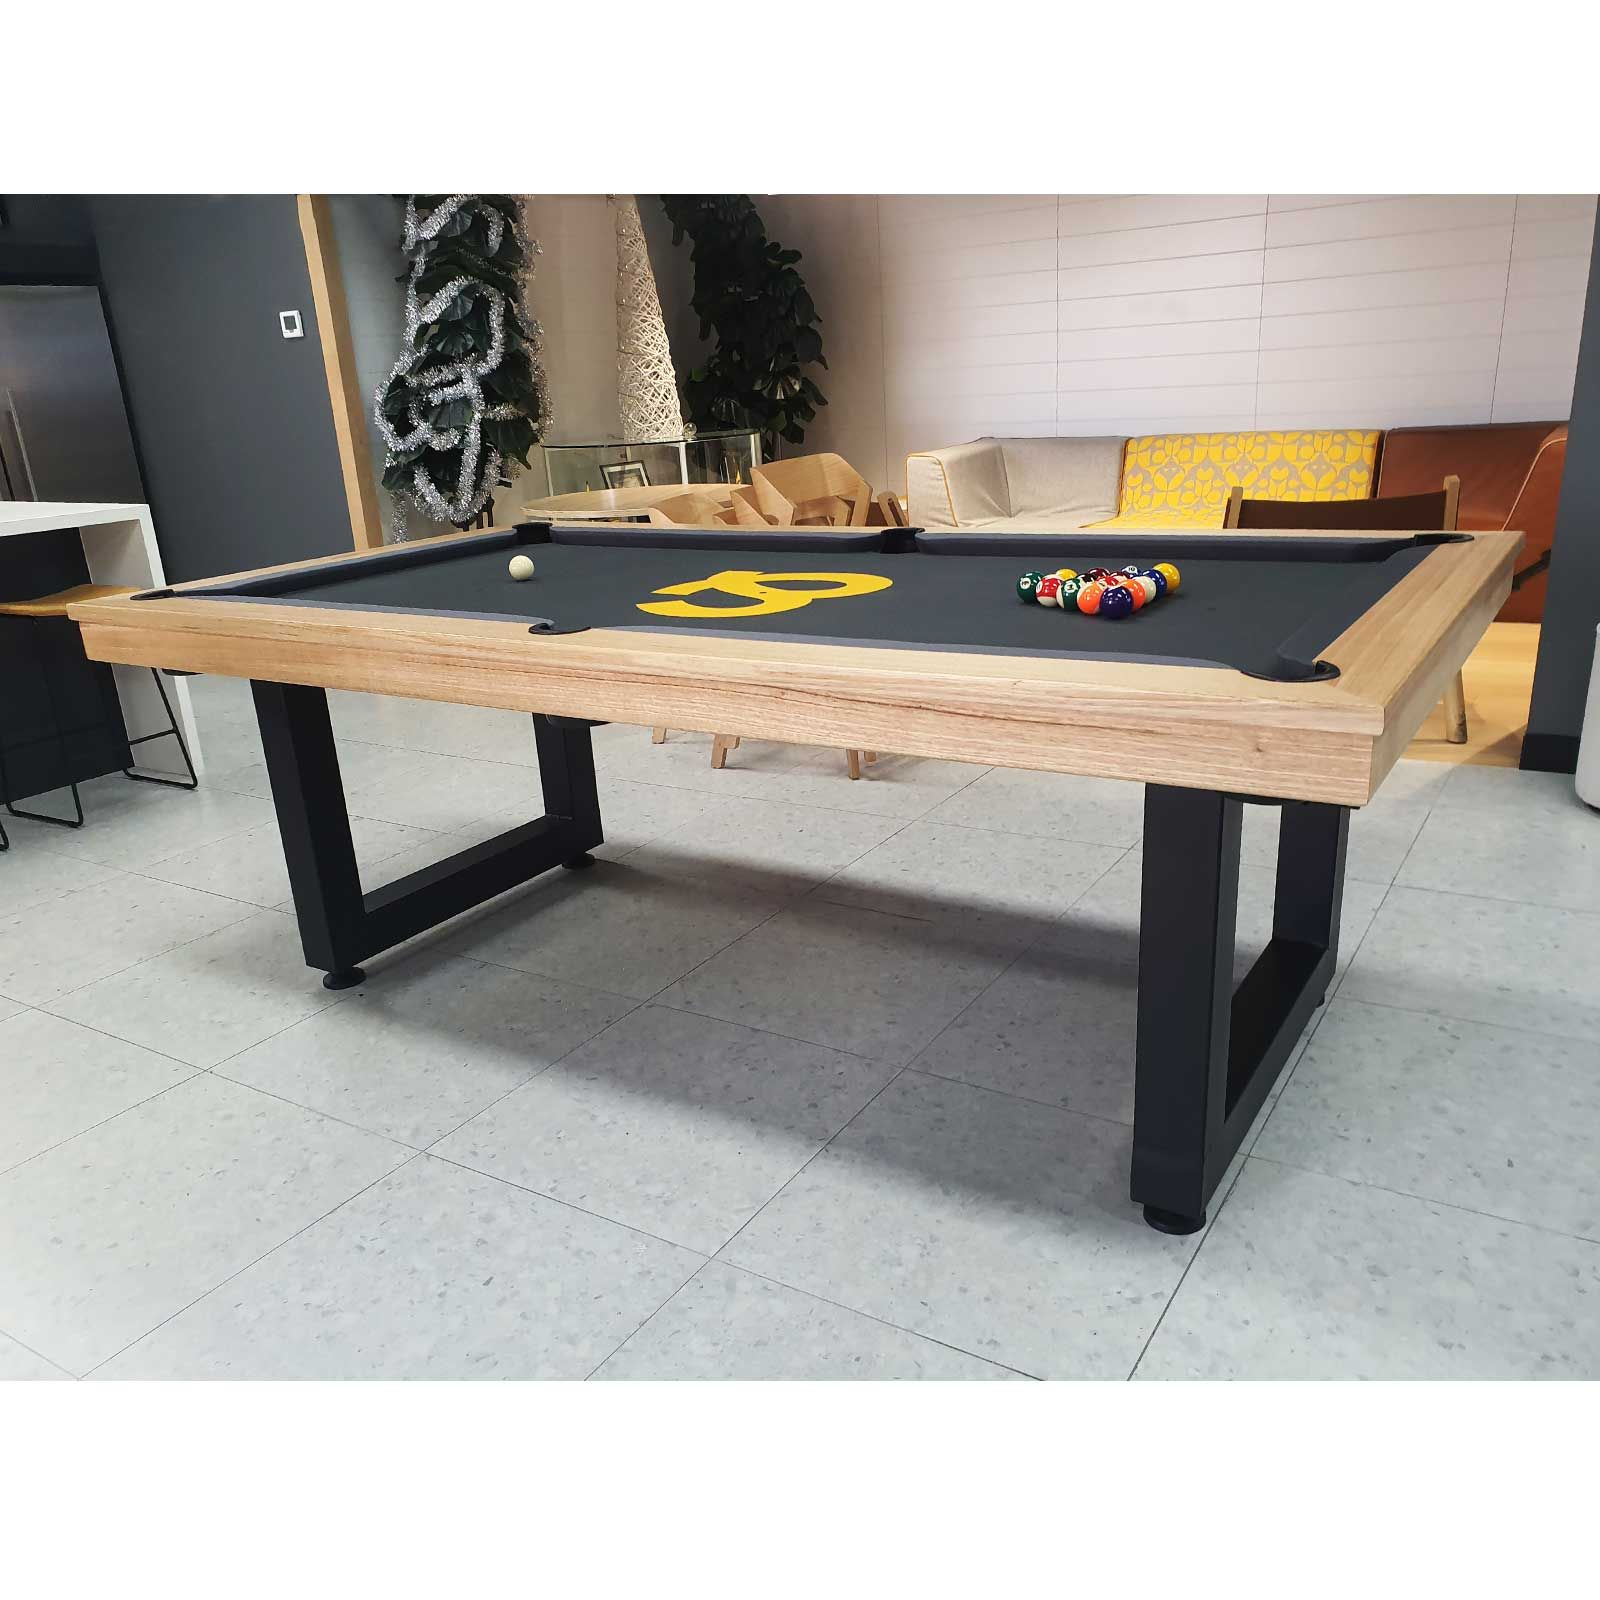 Table De Ping Pong Transformable 7 foot slate odyssey pool billiards table in 2020 | table